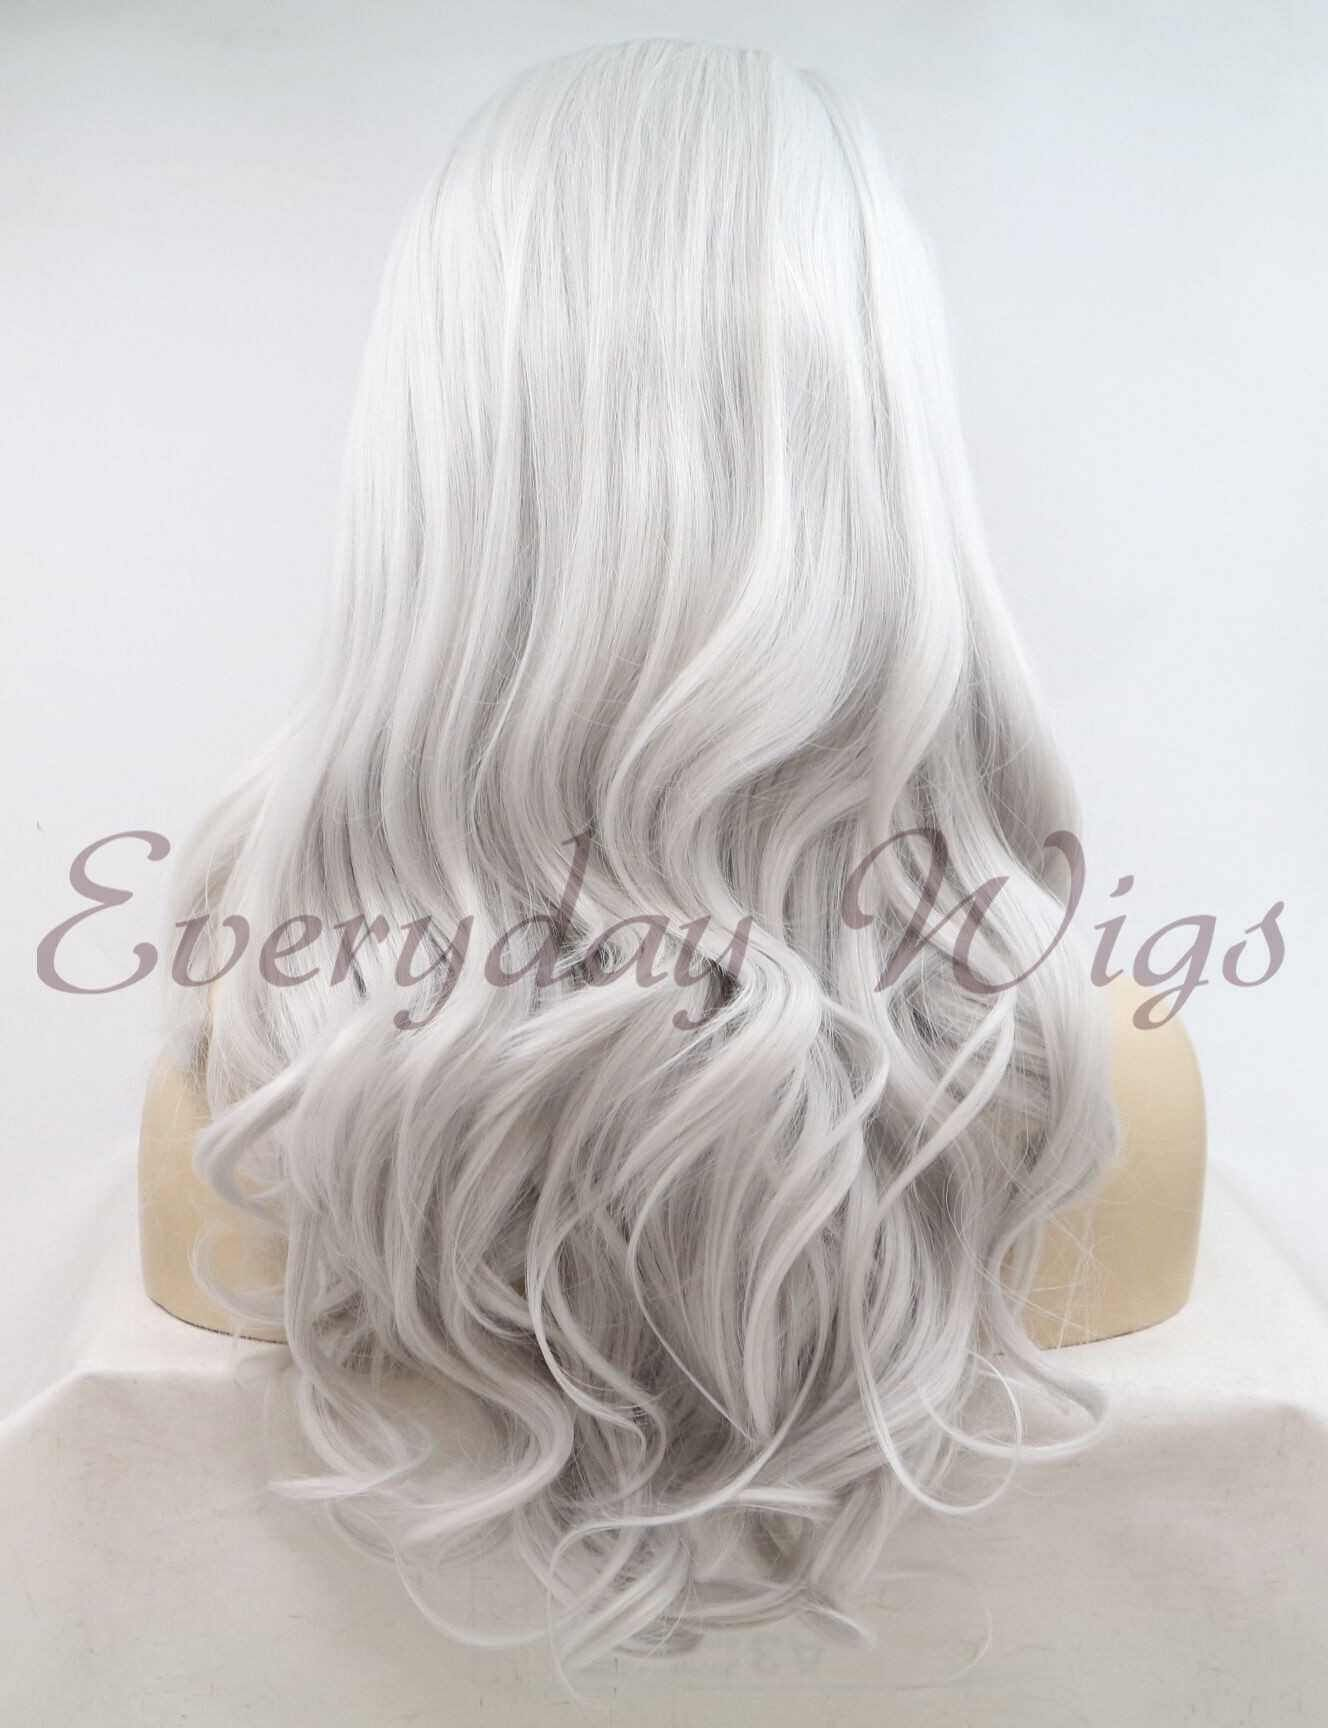 Gray Wigs Lace Frontal Wigs Eyebrow Makeup For Grey HairGrey Hair Cool Skin Tone